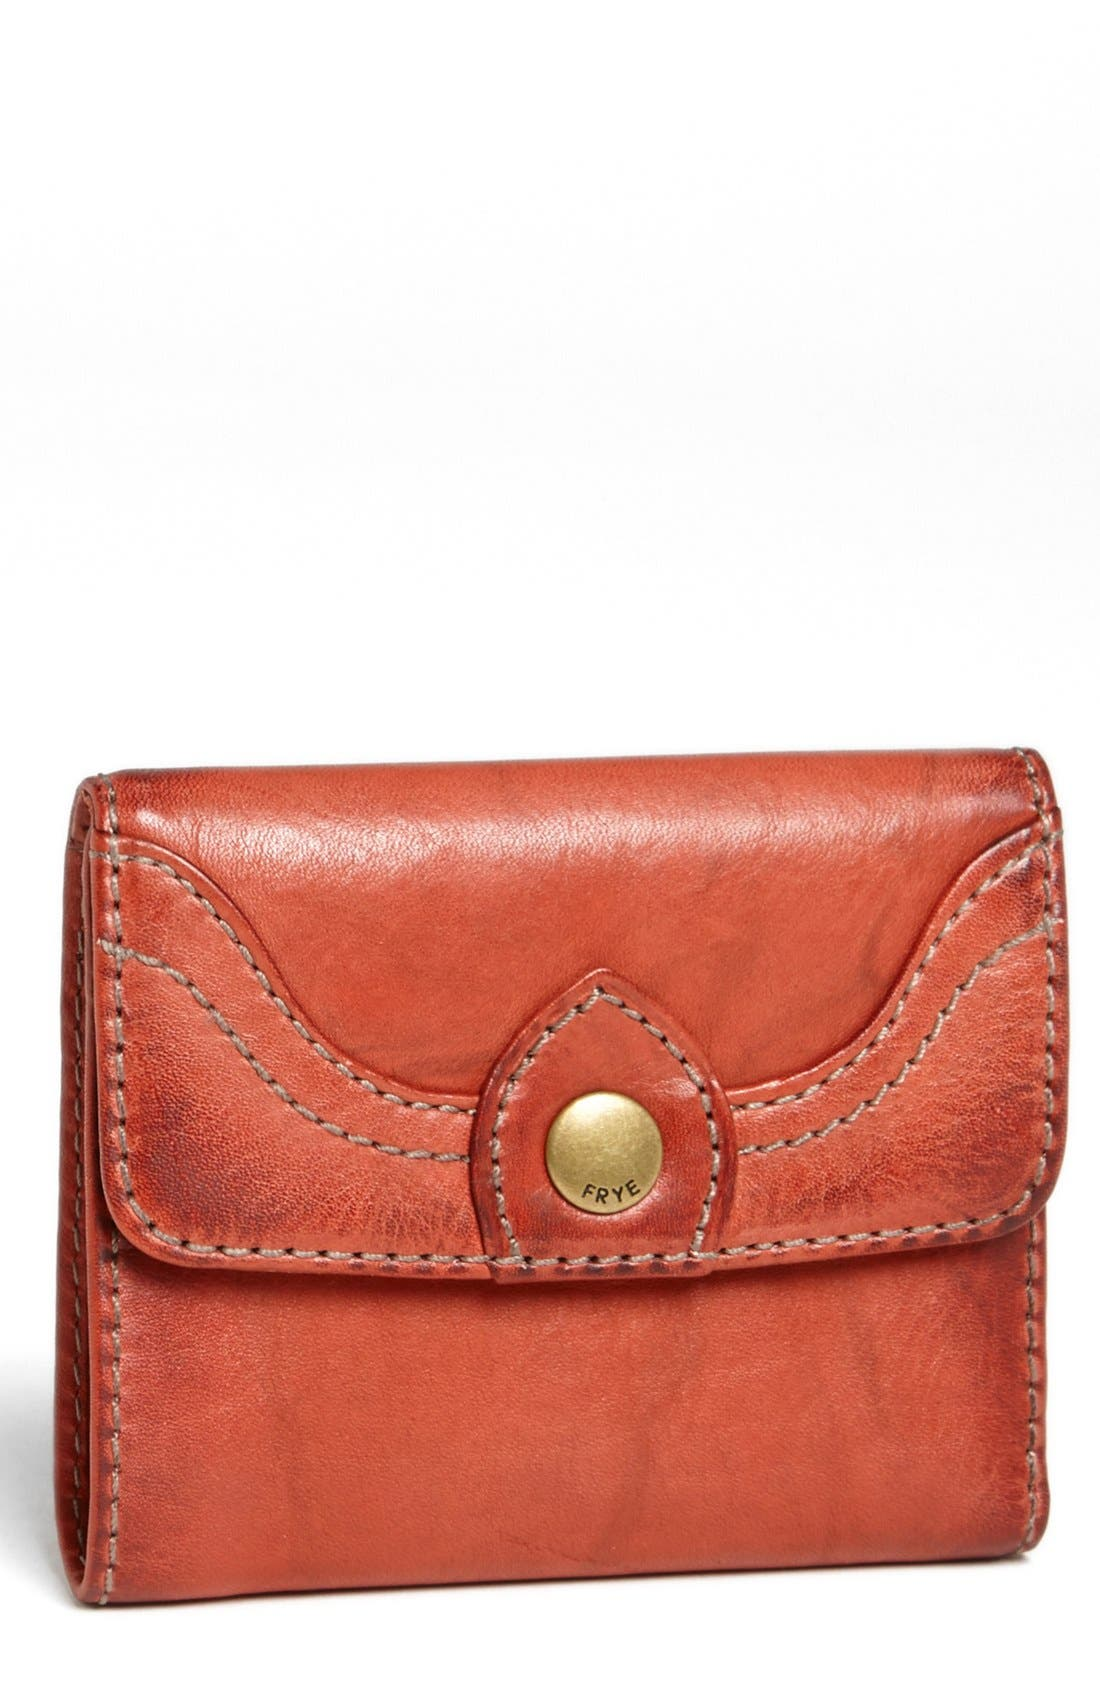 Main Image - Frye 'Campus - Small' Leather Wallet